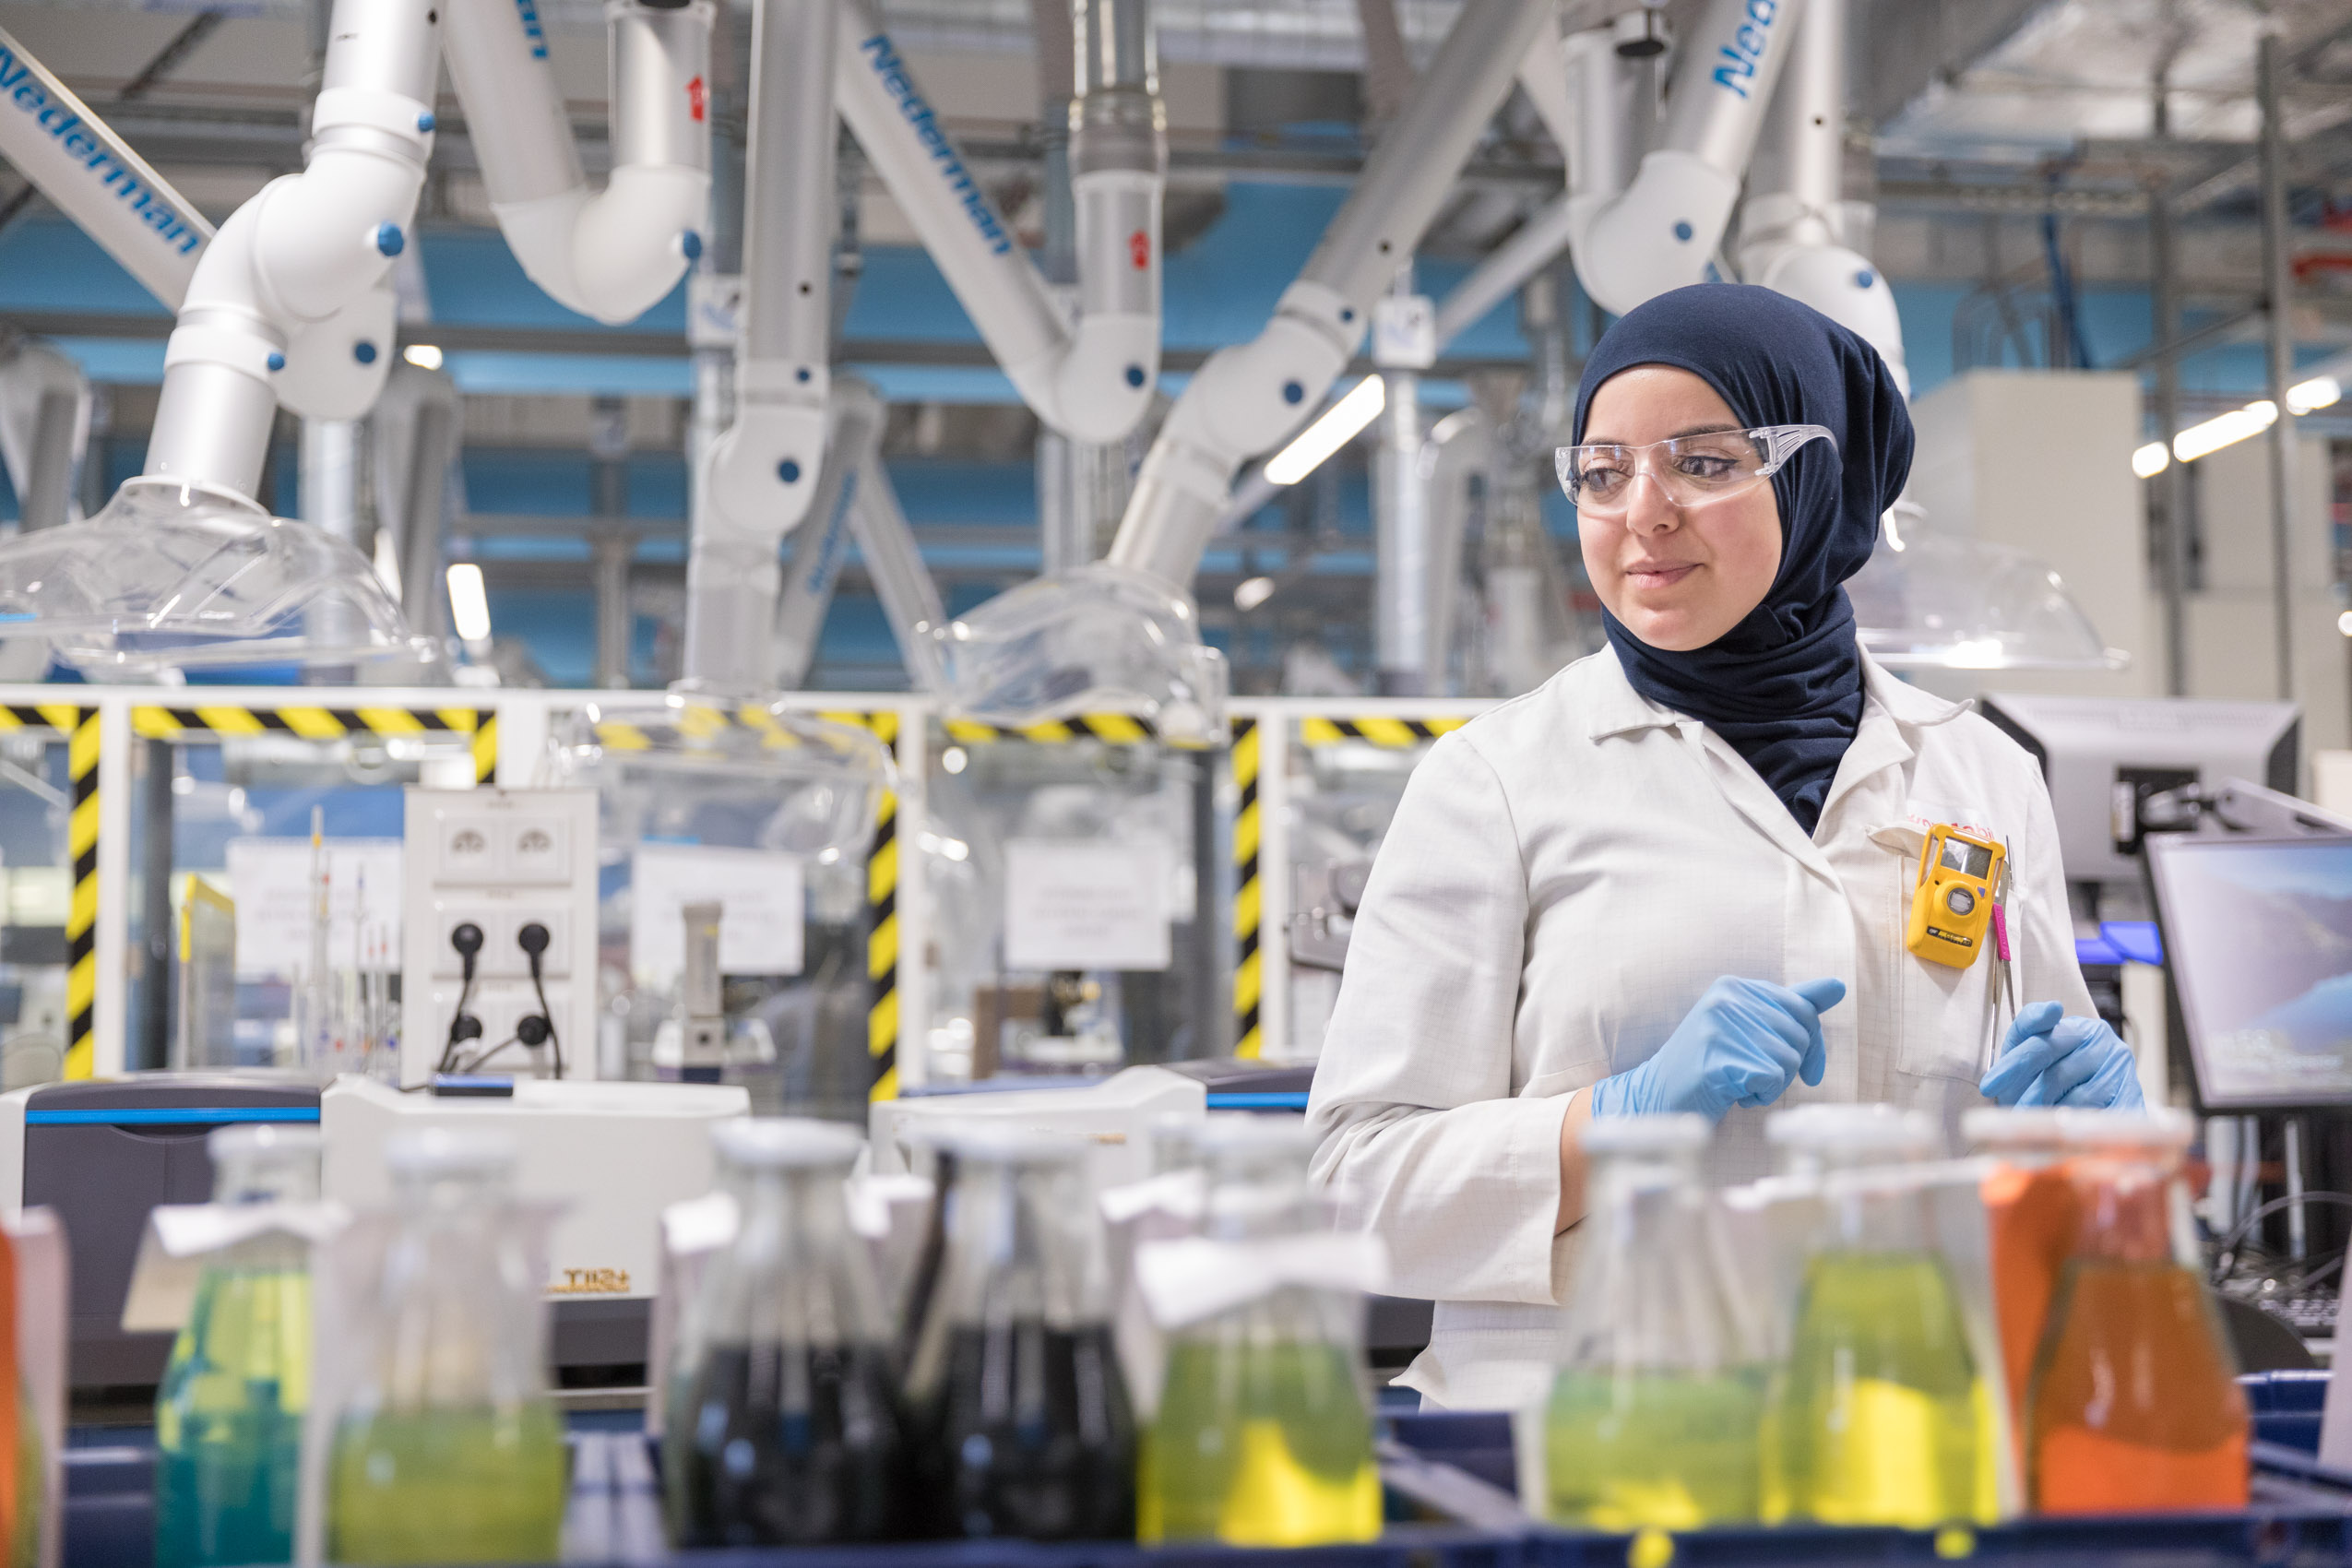 Energy and technology at laboratory with muslim female scientist by photographer Rich Crowder